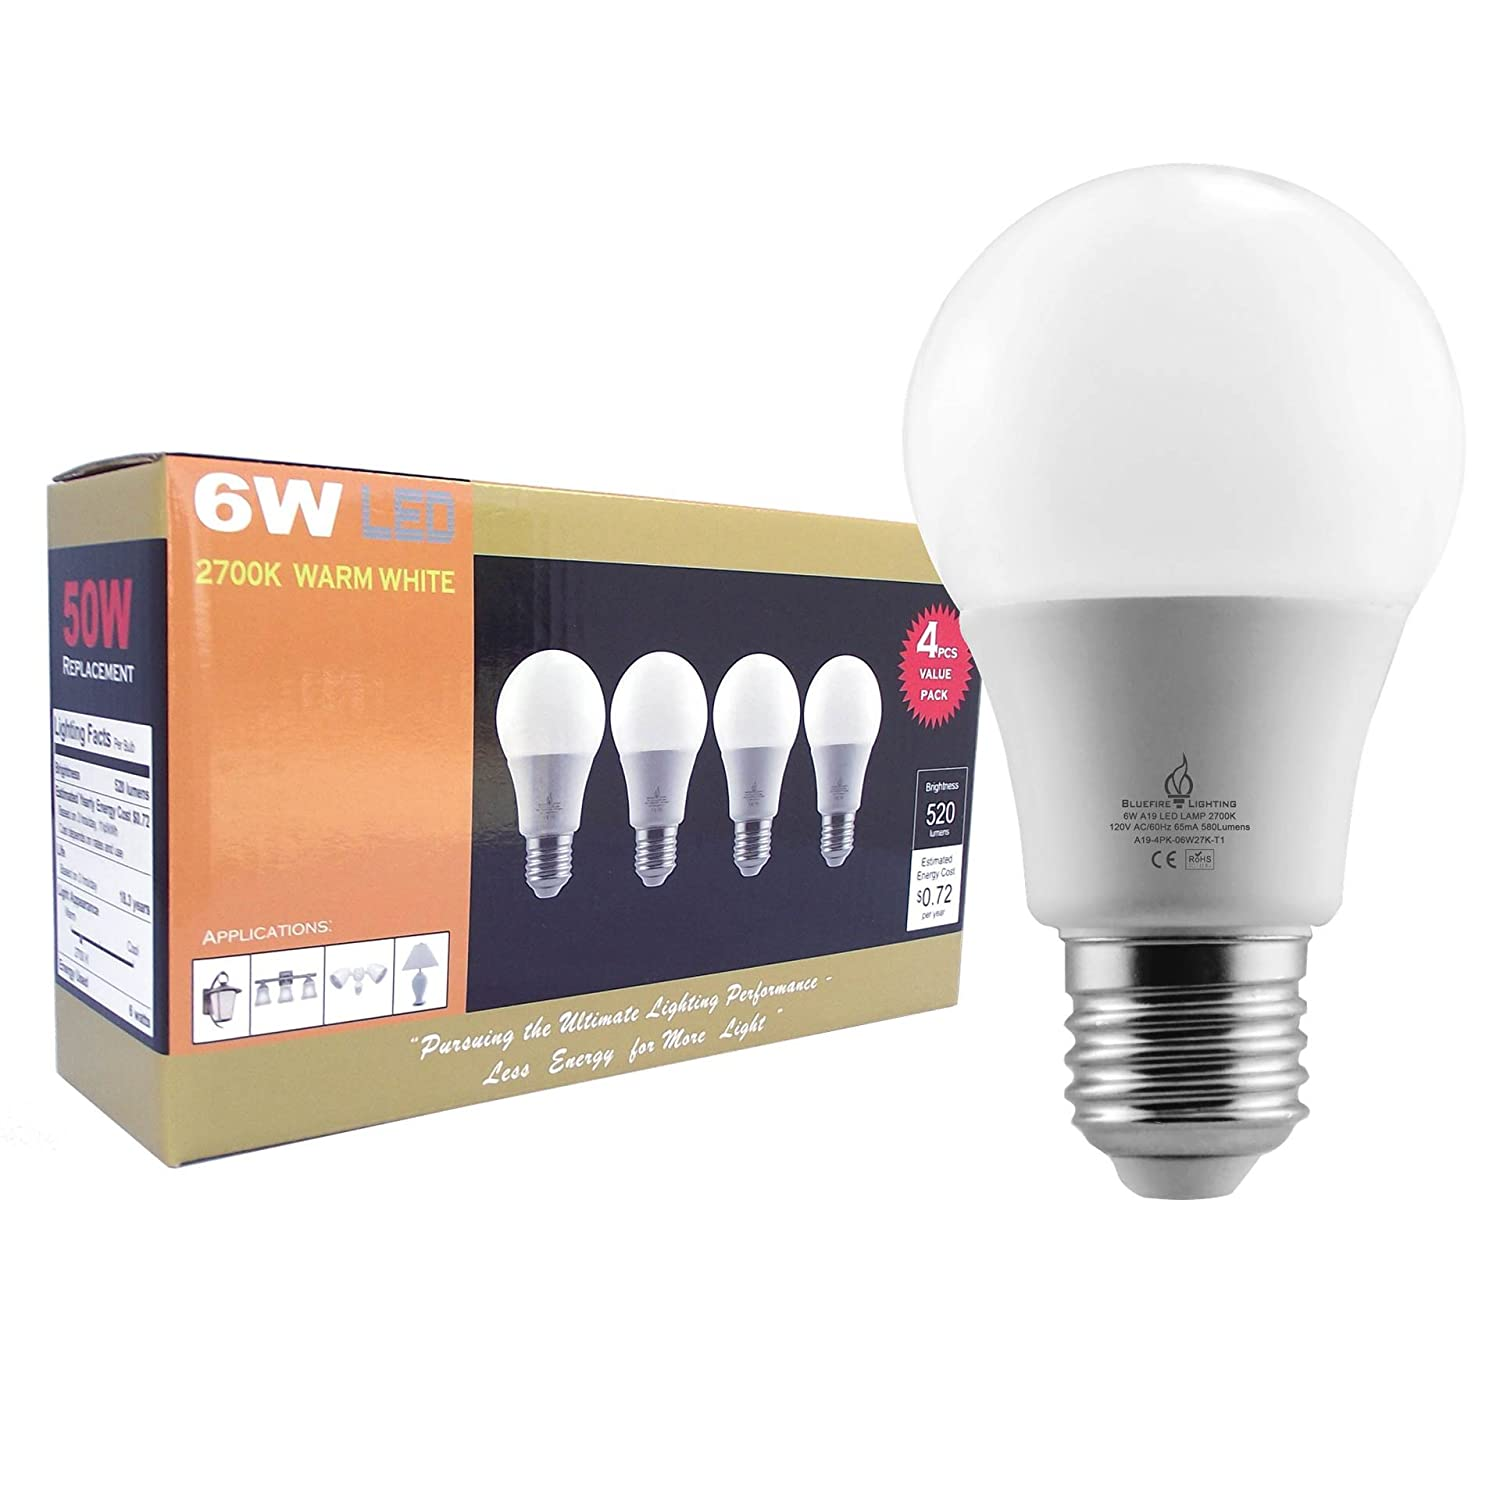 BLUEFIRE 6 Watts A19 LED Light Bulbs, Warm White 2700K, 520 Lumens,  Flickering Free Light, 40W Replacement   4PCS Value Pack, Best For Bathroom  Vanity ...